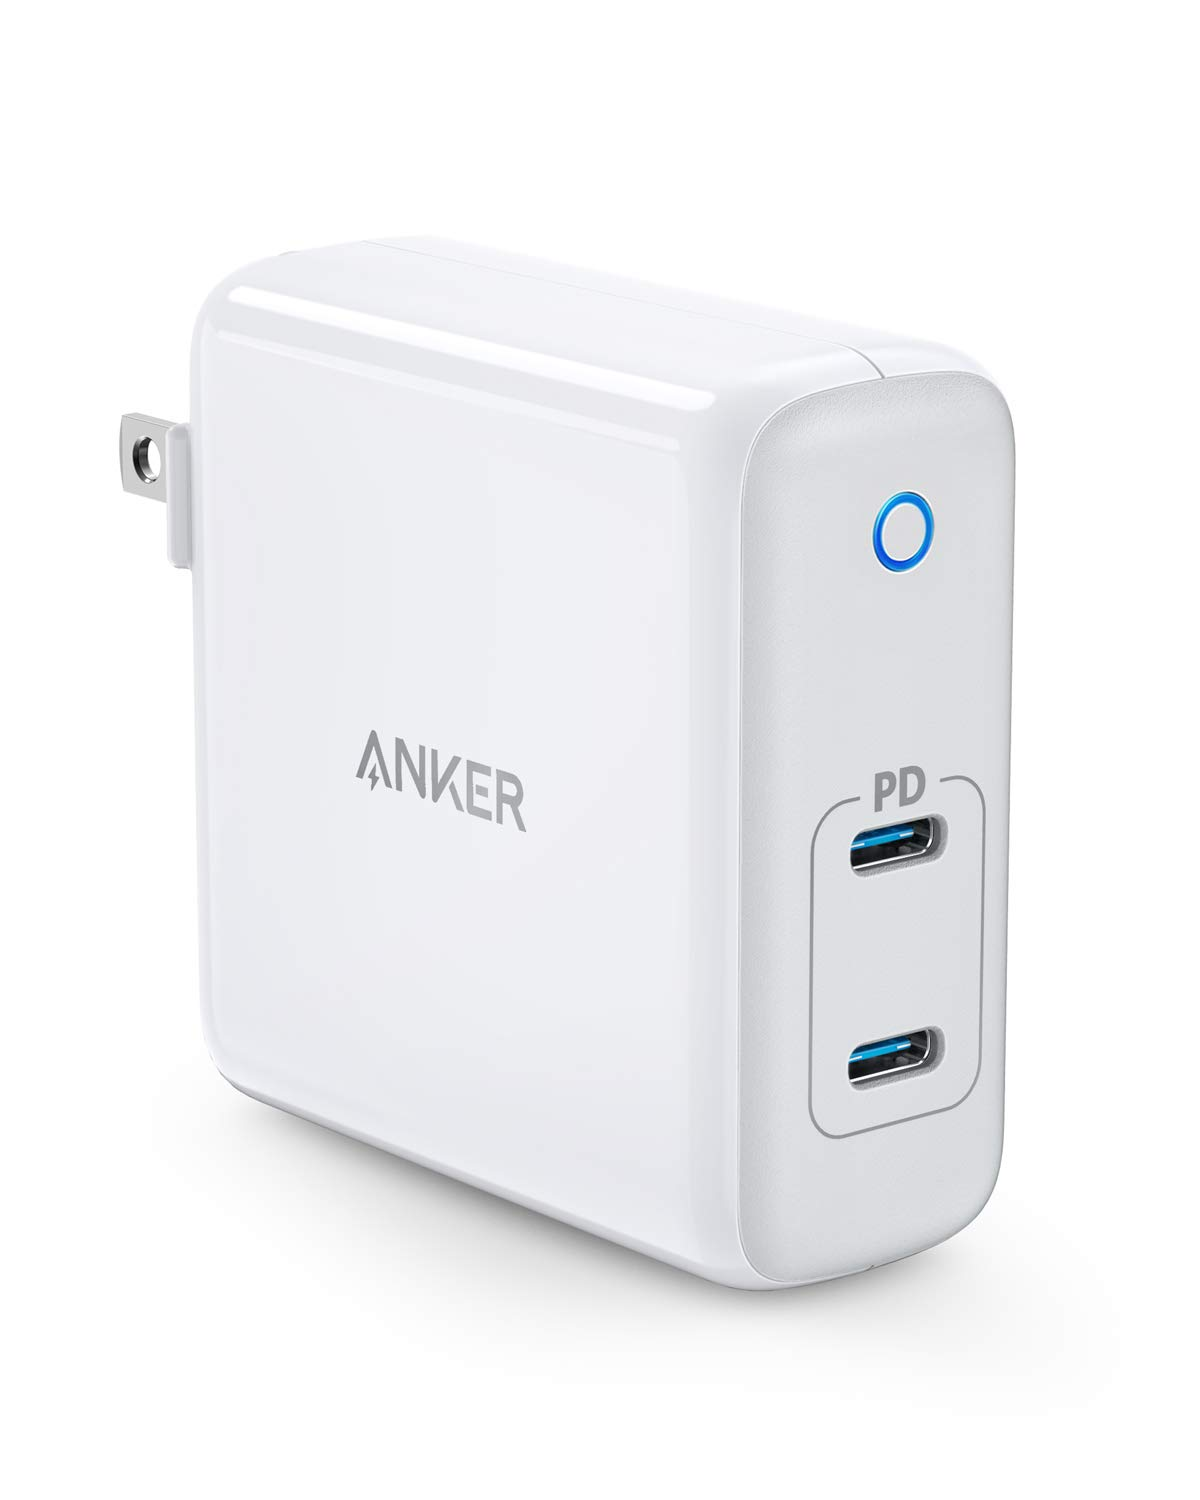 Anker 60W 2-Port USB C Charger, PowerPort Atom PD 2 [GaN Tech] Ultra Compact Foldable Type C Wall Charger, Power Delivery for MacBook Pro/Air, iPad Pro, iPhone XR/XS/Max/X/8, Pixel, Galaxy, and More